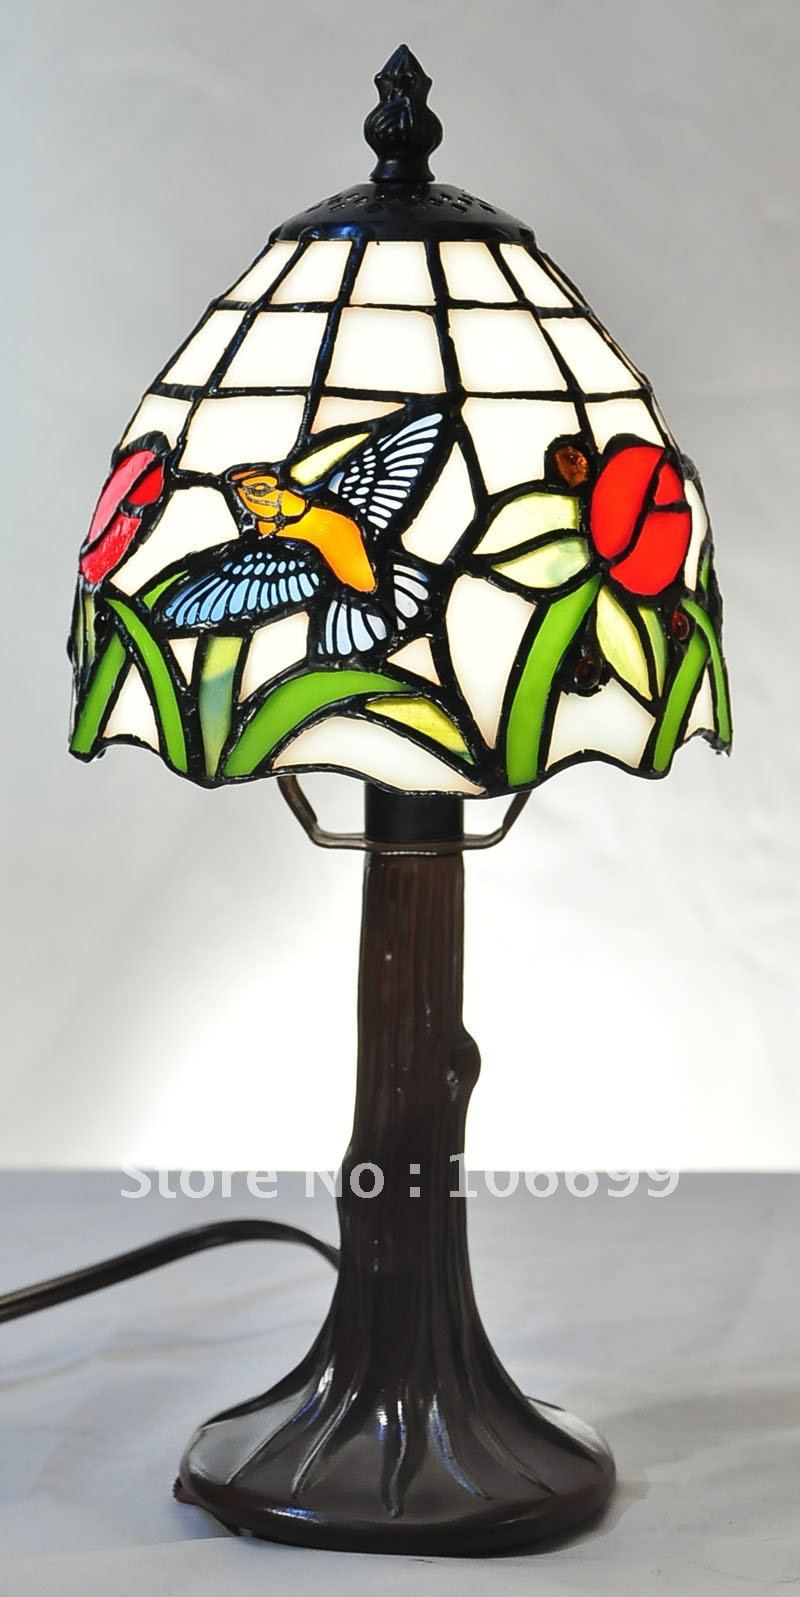 Tiffany lamps for sale hot sale tiffany table lamp mediterranean tiffany lamps for sale hot sale tiffany table lamp mediterranean style lamp decorative lamp aloadofball Gallery